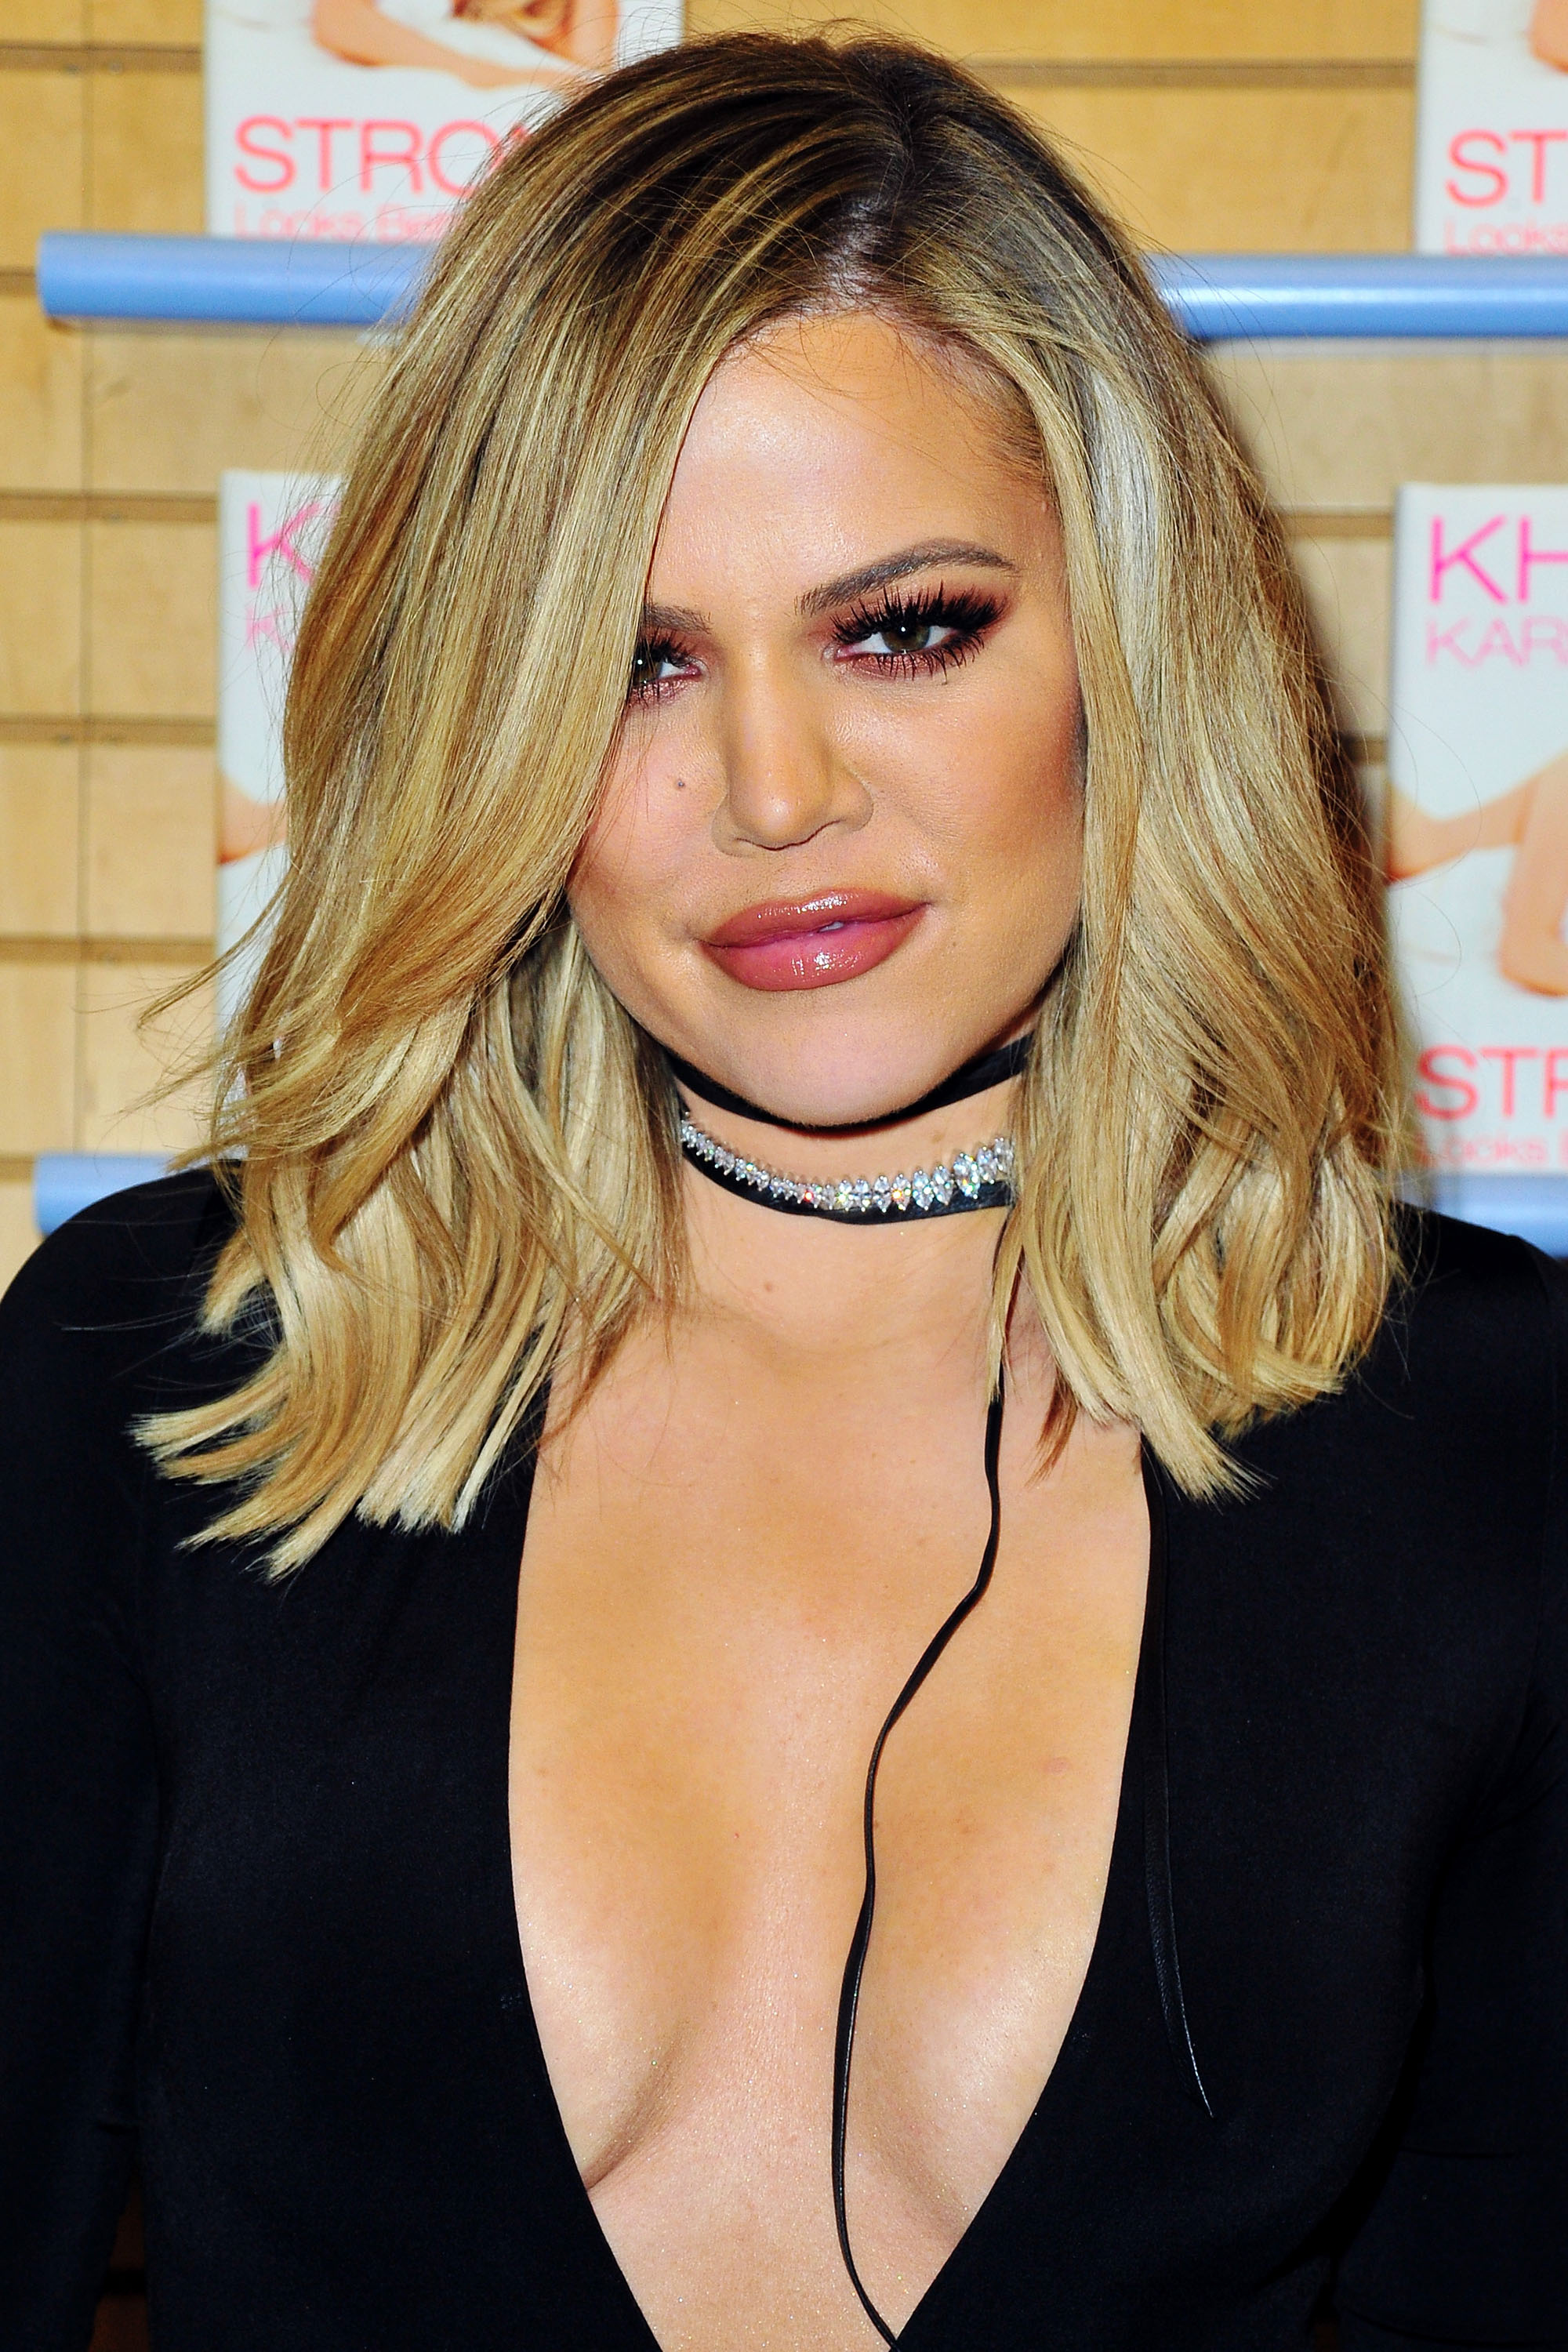 Khloe Kardashian Admits To Fillers That Messed Up Her Face